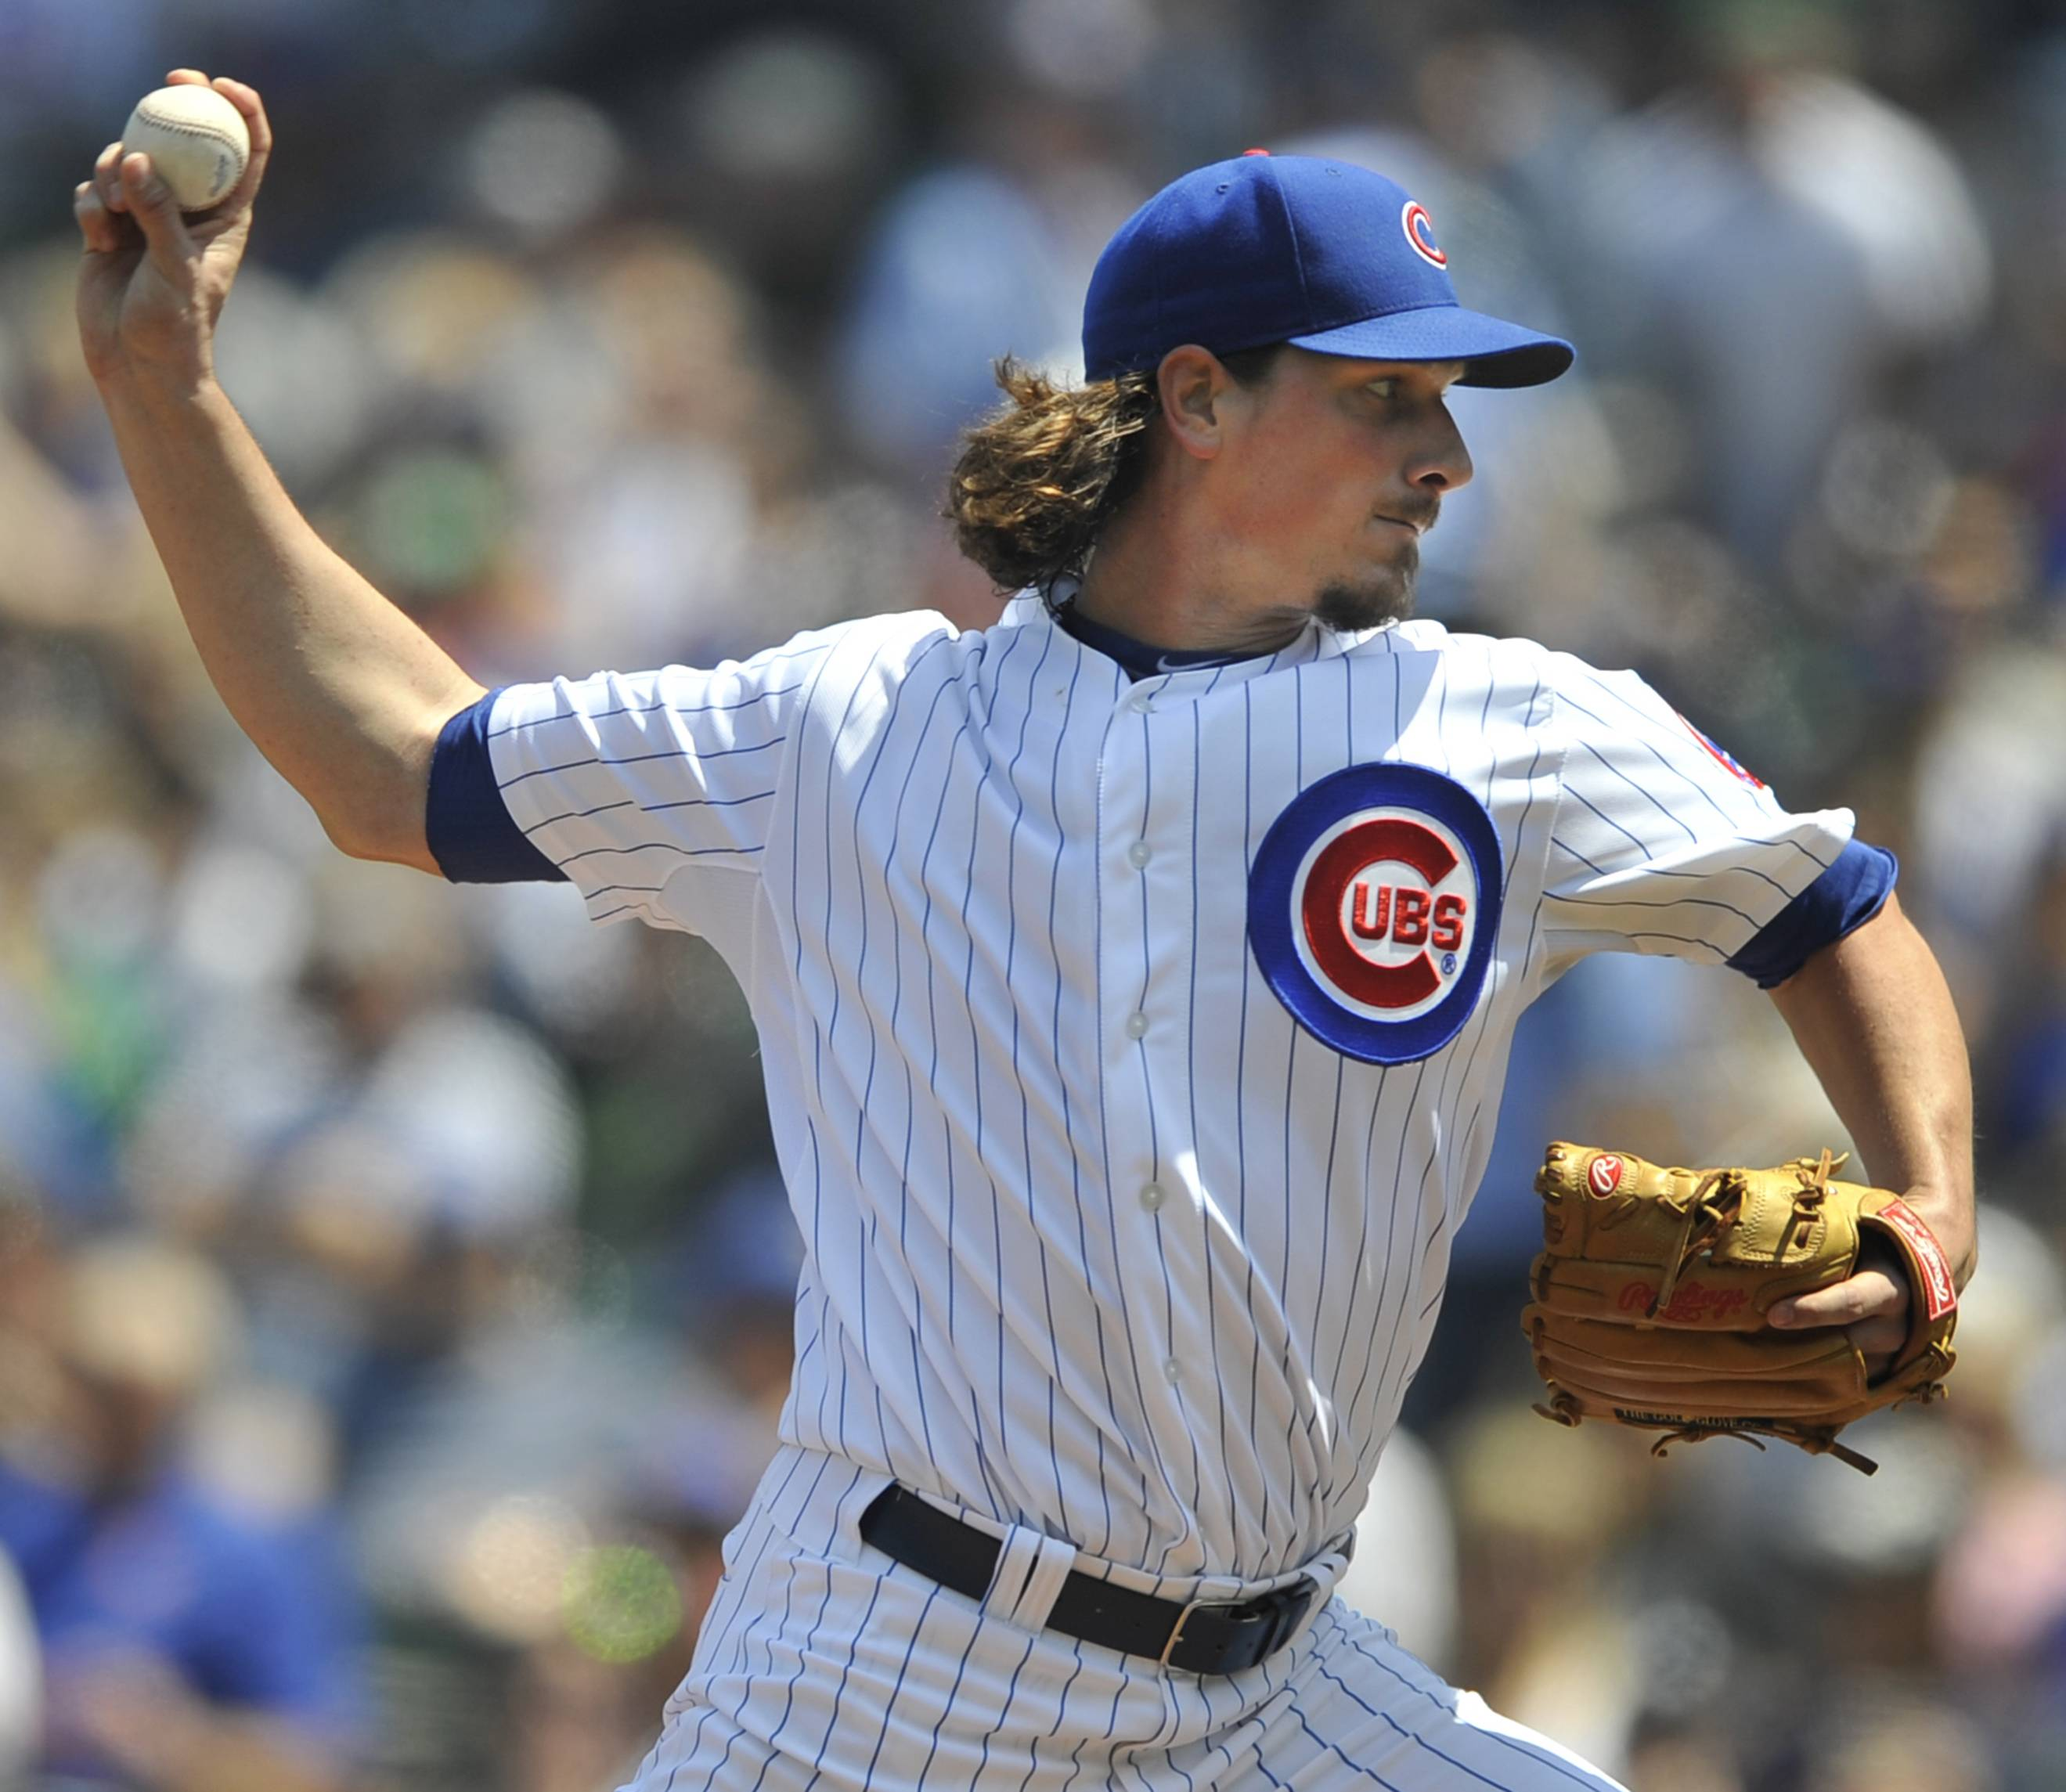 Chicago Cubs starter Jeff Samardzija delivers a pitch during the first inning of an interleague baseball game against the New York Yankees in Chicago, May 21, 2014. (AP Photo/Paul Beaty)